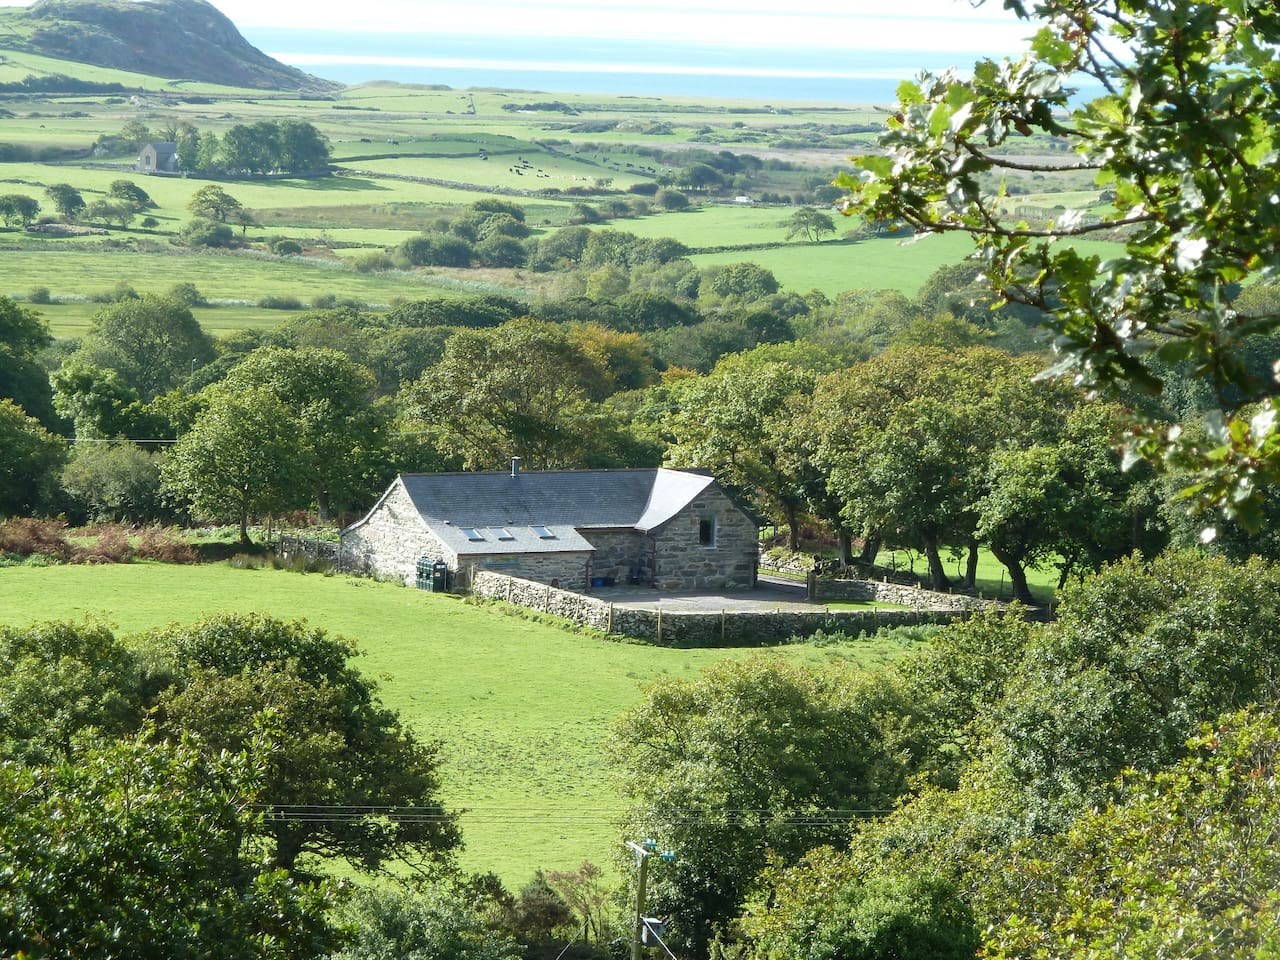 Hebog Bach nestles on a private 2000 acre rural Estate with views across the Llyn Peninsular.